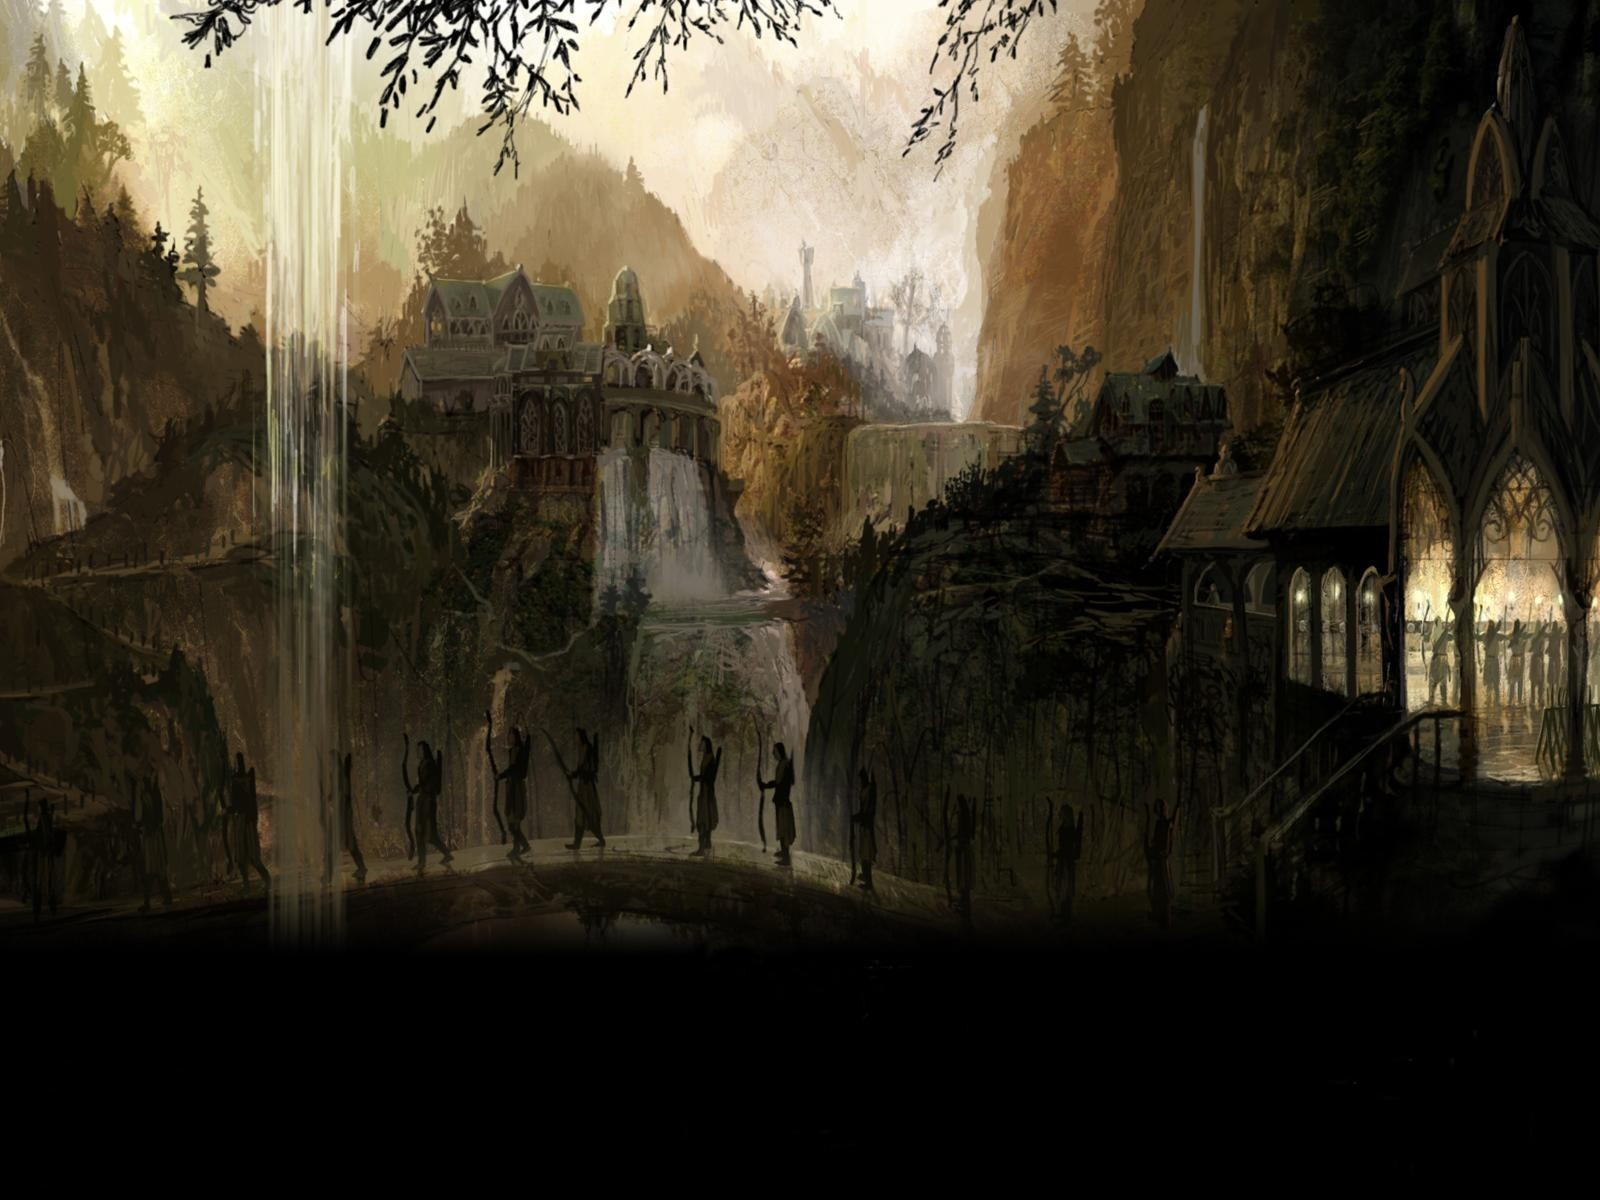 rivendell wallpaper - photo #18